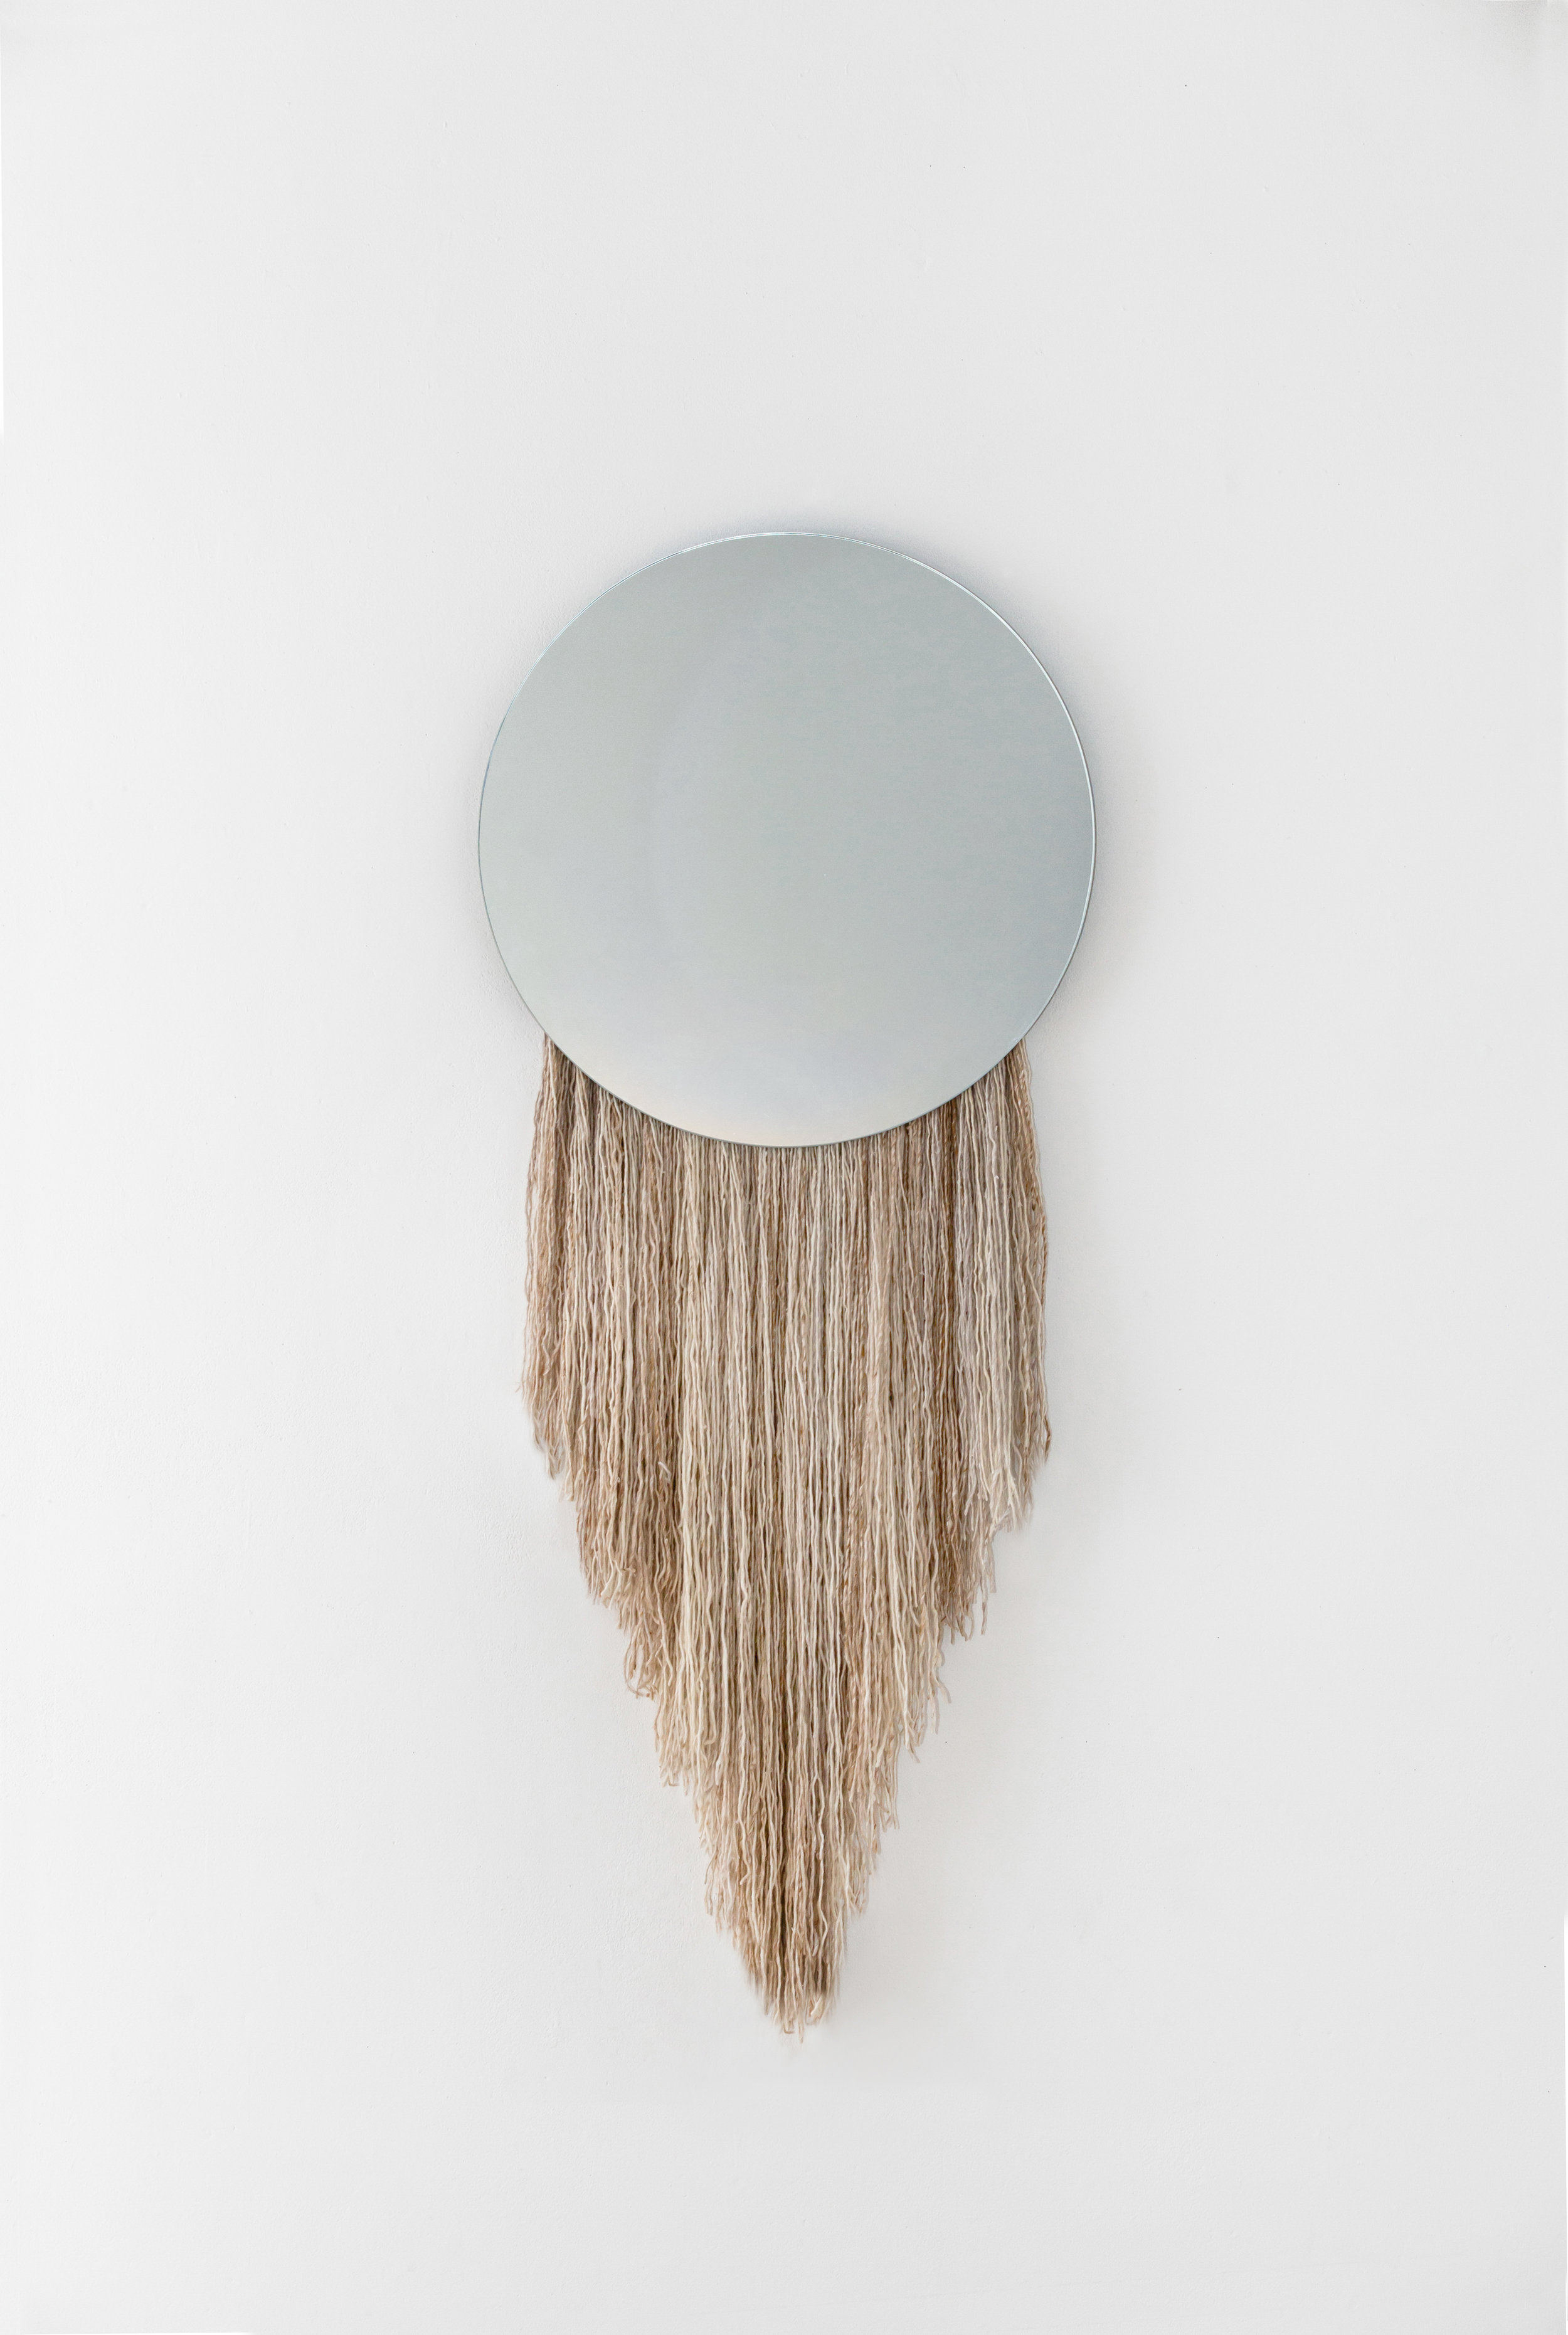 EOS, mirror embellished with fiber named after the ancient Greek goddess Dawn